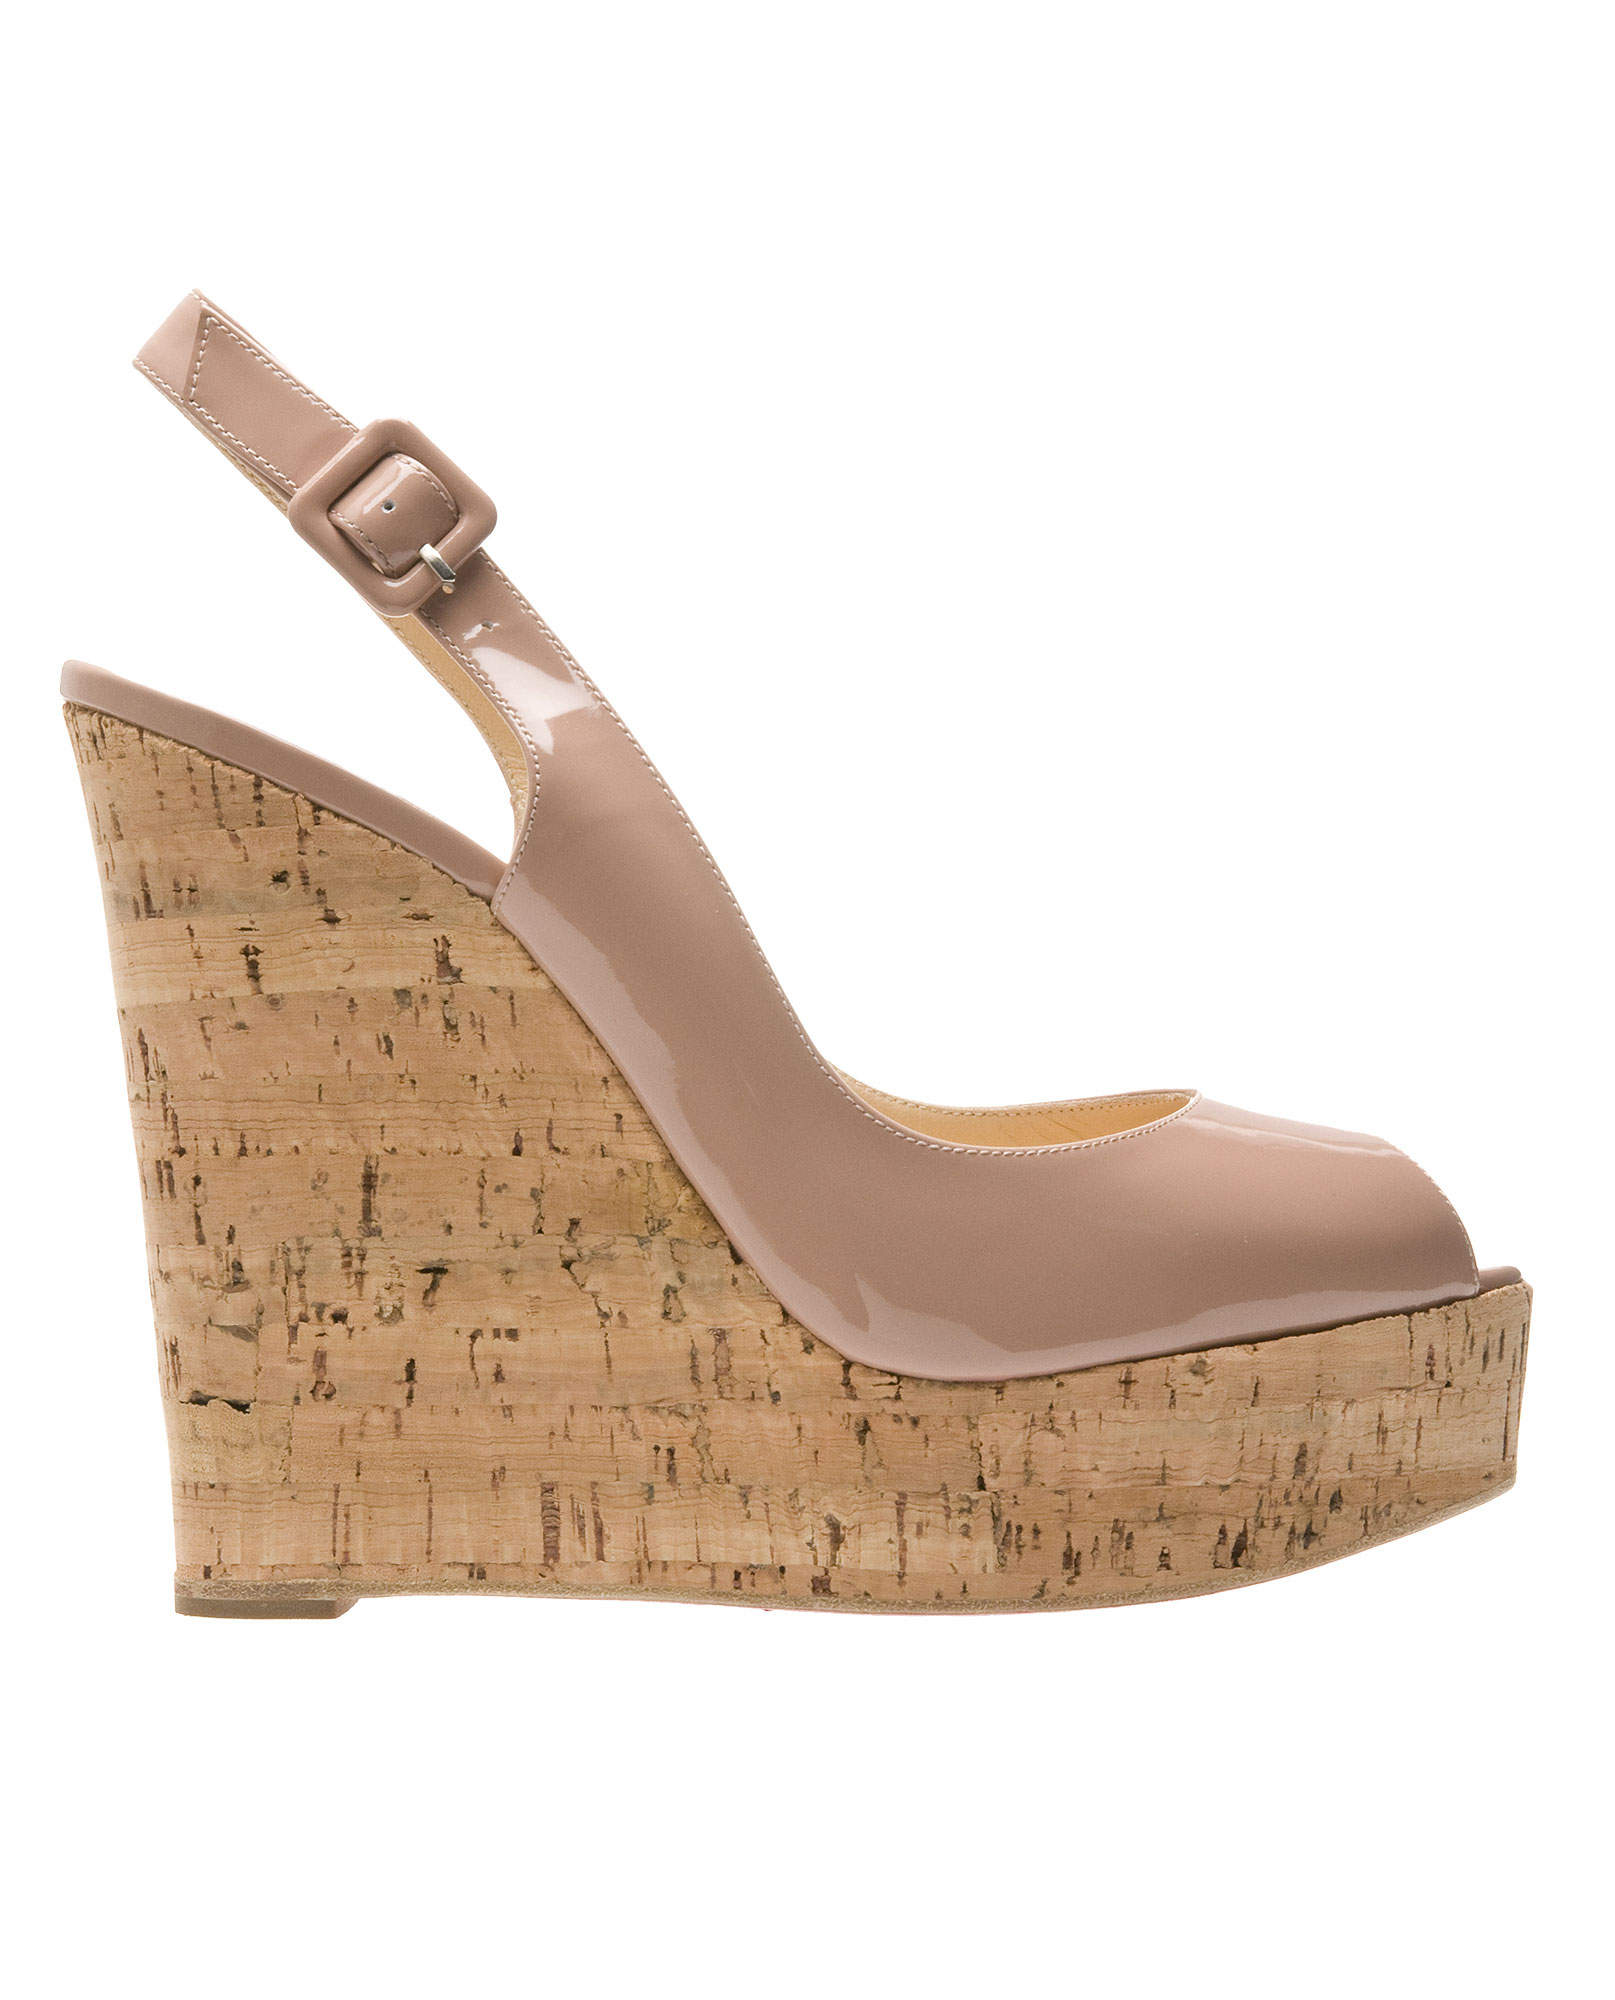 christian louboutin wedge slingback sandals | Boulder Poetry Tribe